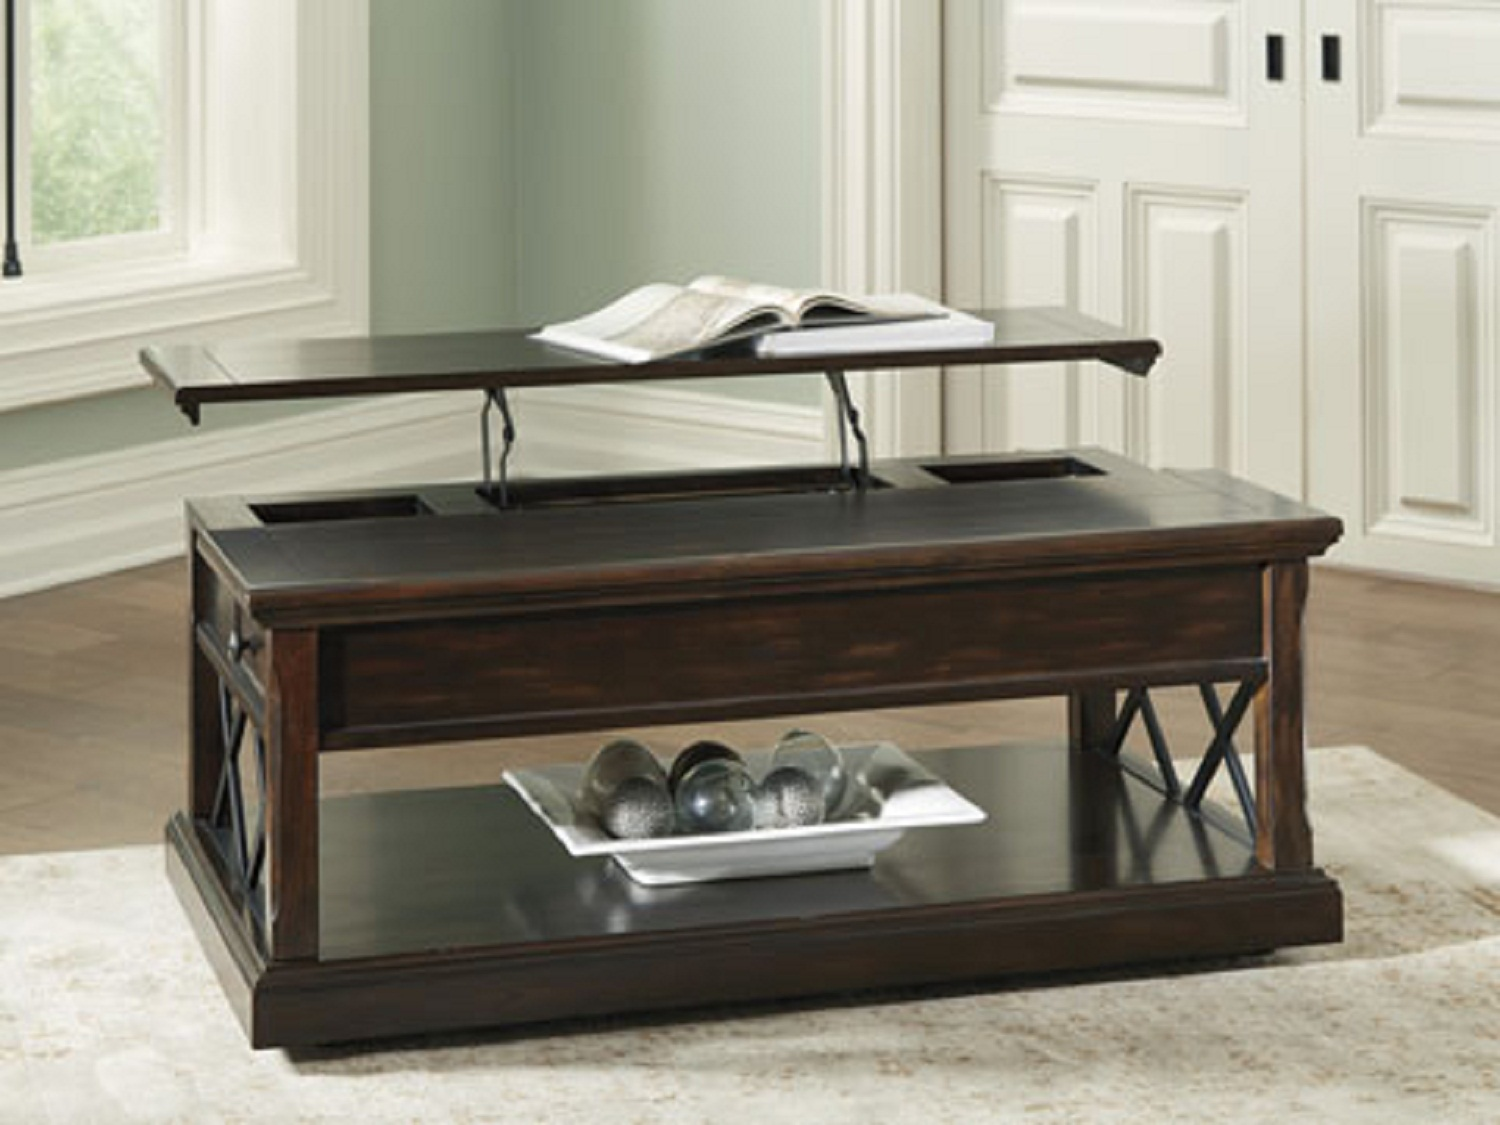 Roddinton Lift top Coffee table, T701-9, Coffee Tables by Midha Furniture to Brampton, Mississauga, Etobicoke, Toronto, Scraborough, Caledon, Oakville, Markham, Ajax, Pickering, Oshawa, Richmondhill, Kitchener, Hamilton, Cambridge, Waterloo and GTA area